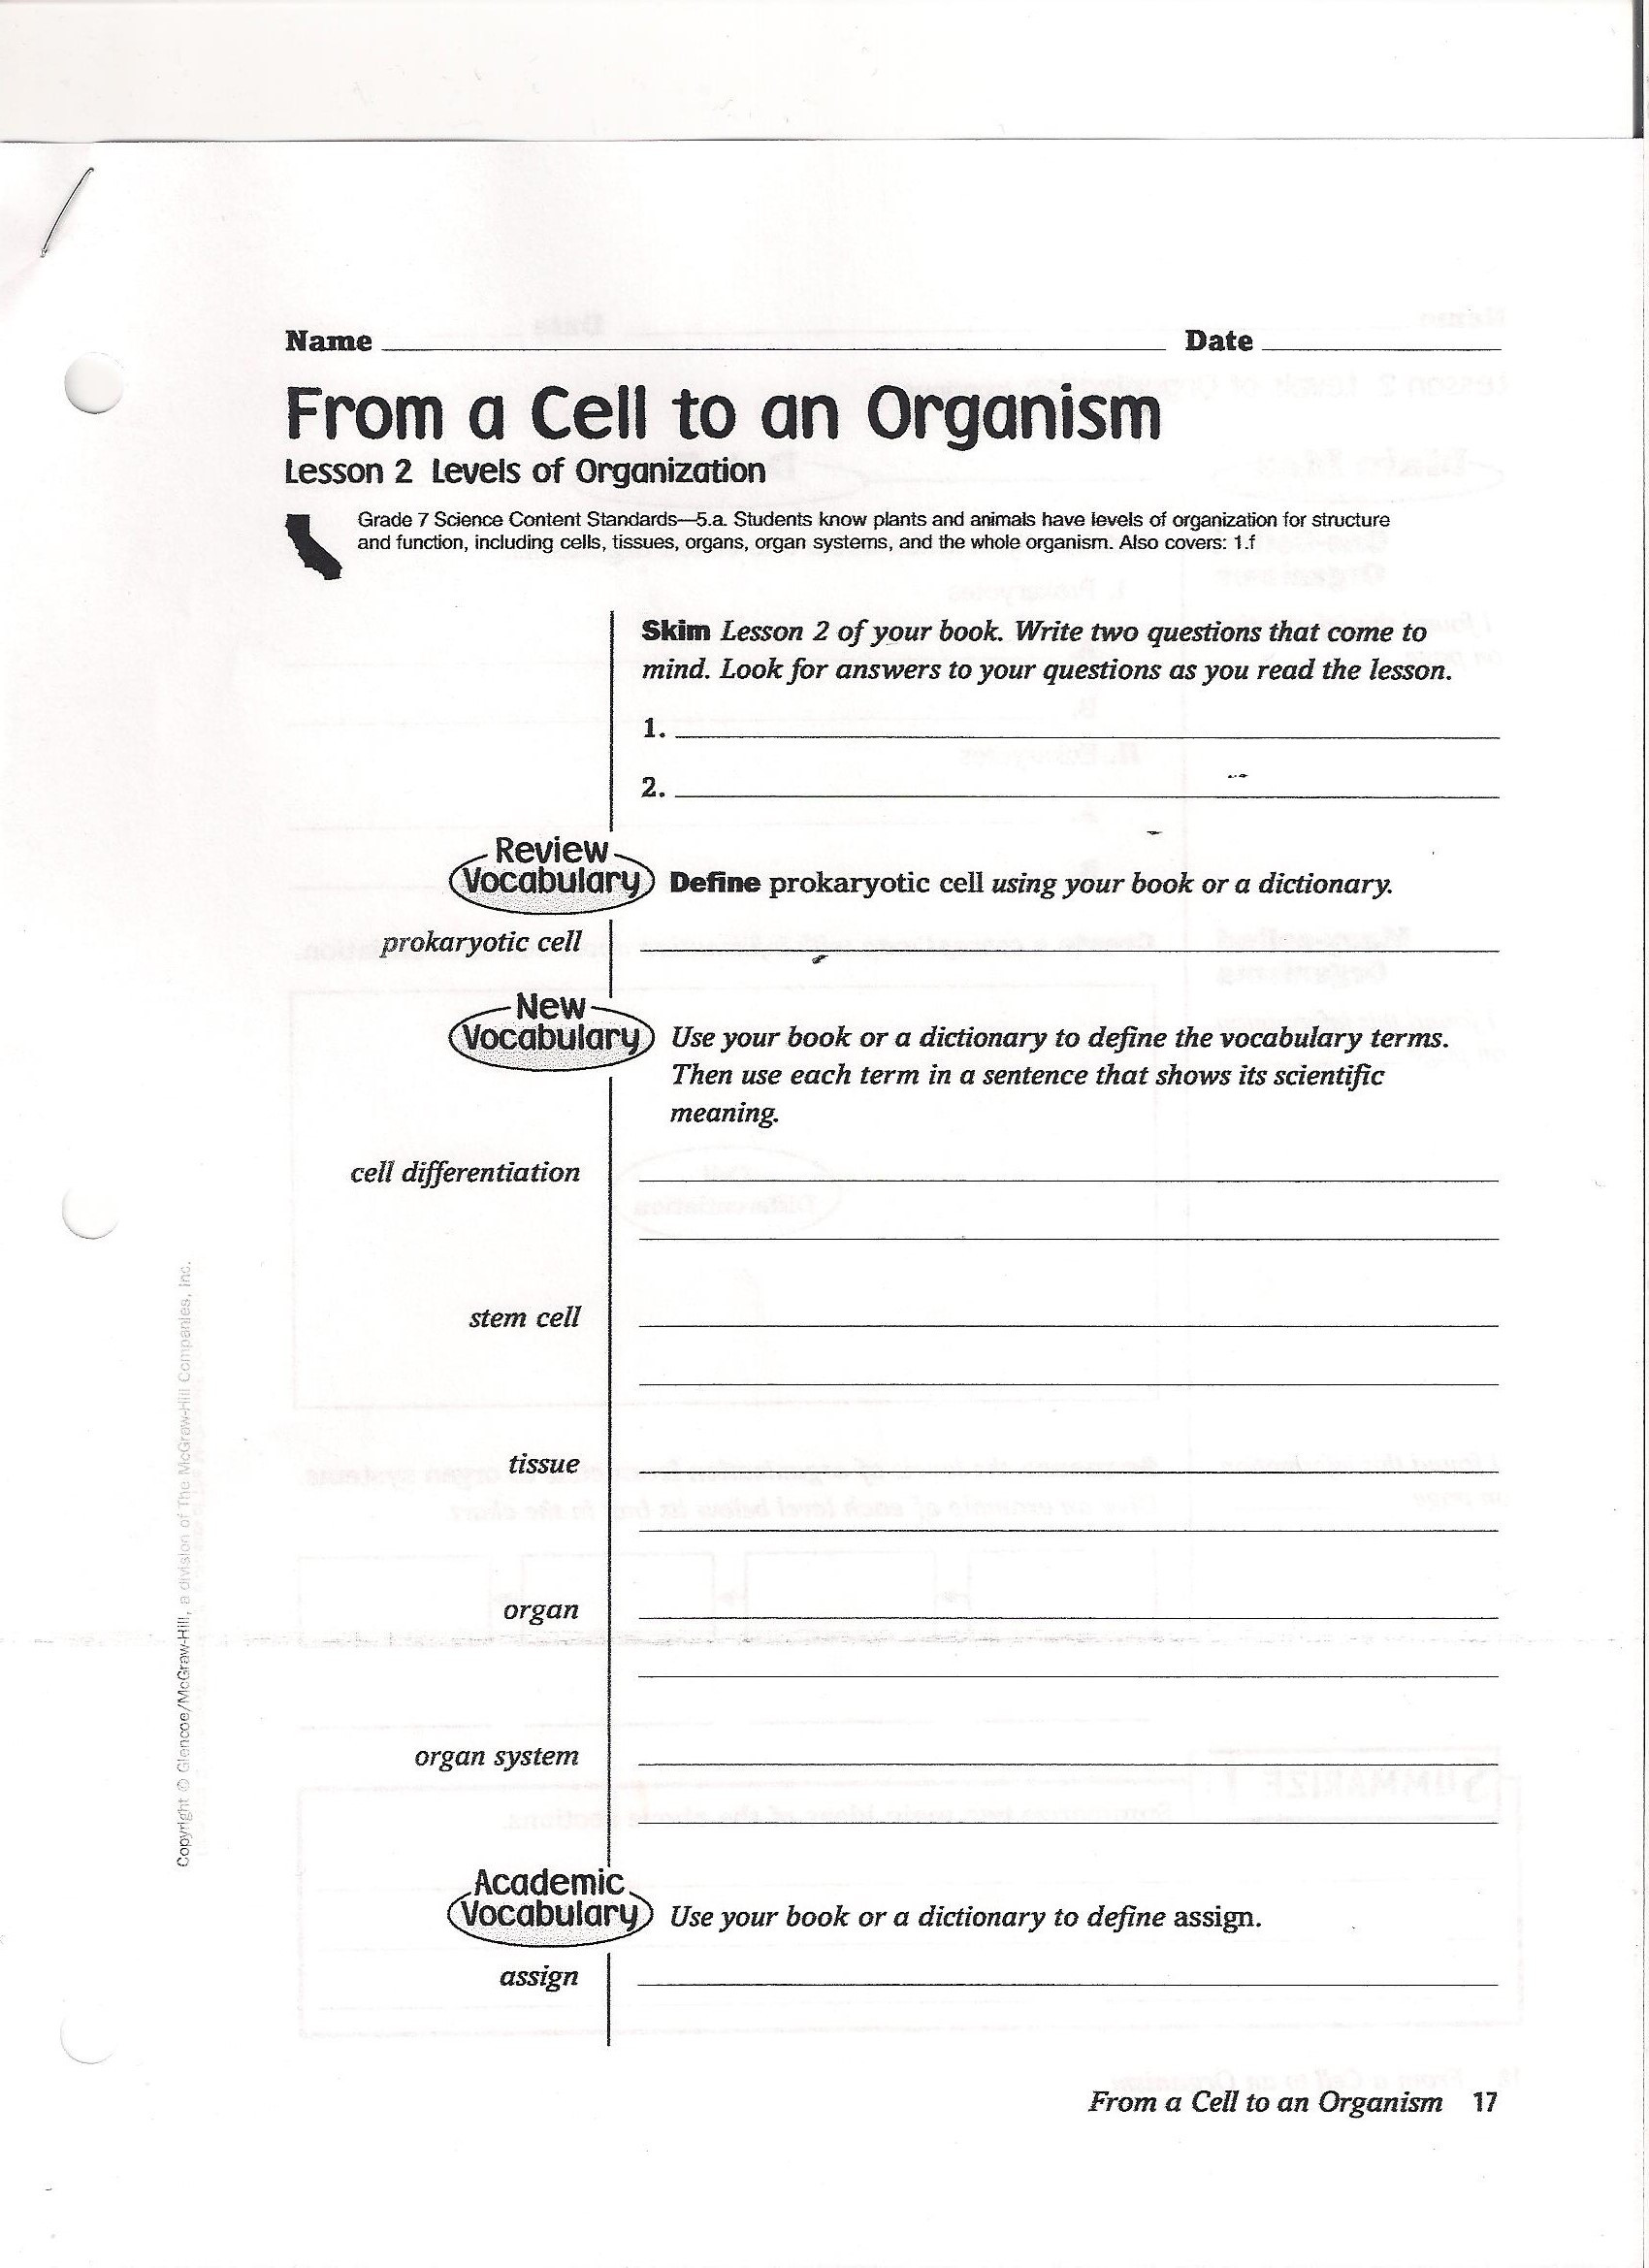 Science Worksheets 7th Grade Unique is Life Science Worksheet Educational 7th Grade Cell